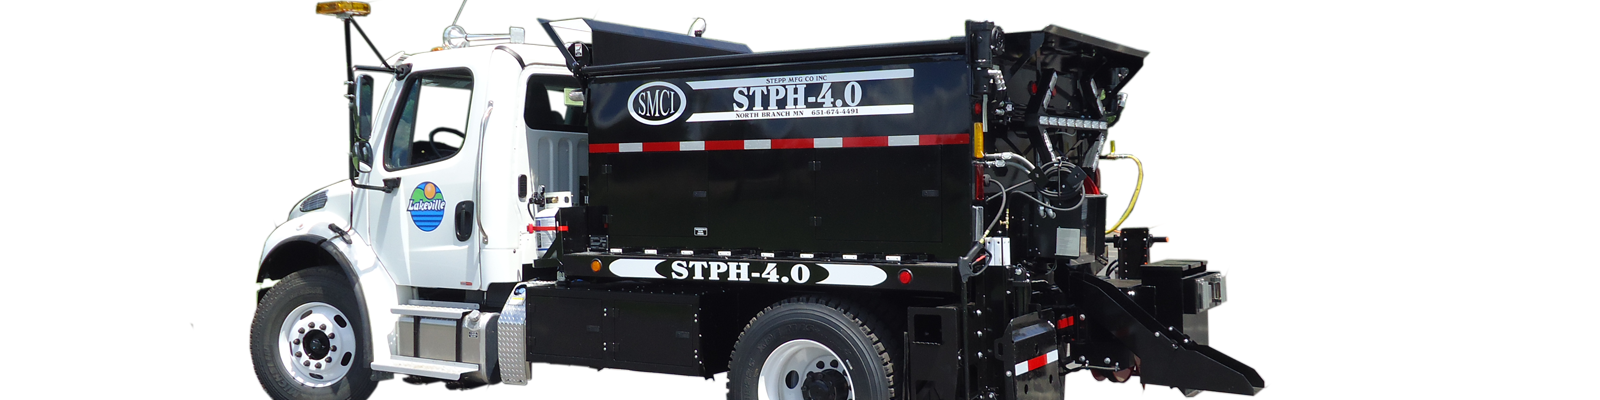 Stepp Stph-4.0 Asphalt Patch Truck